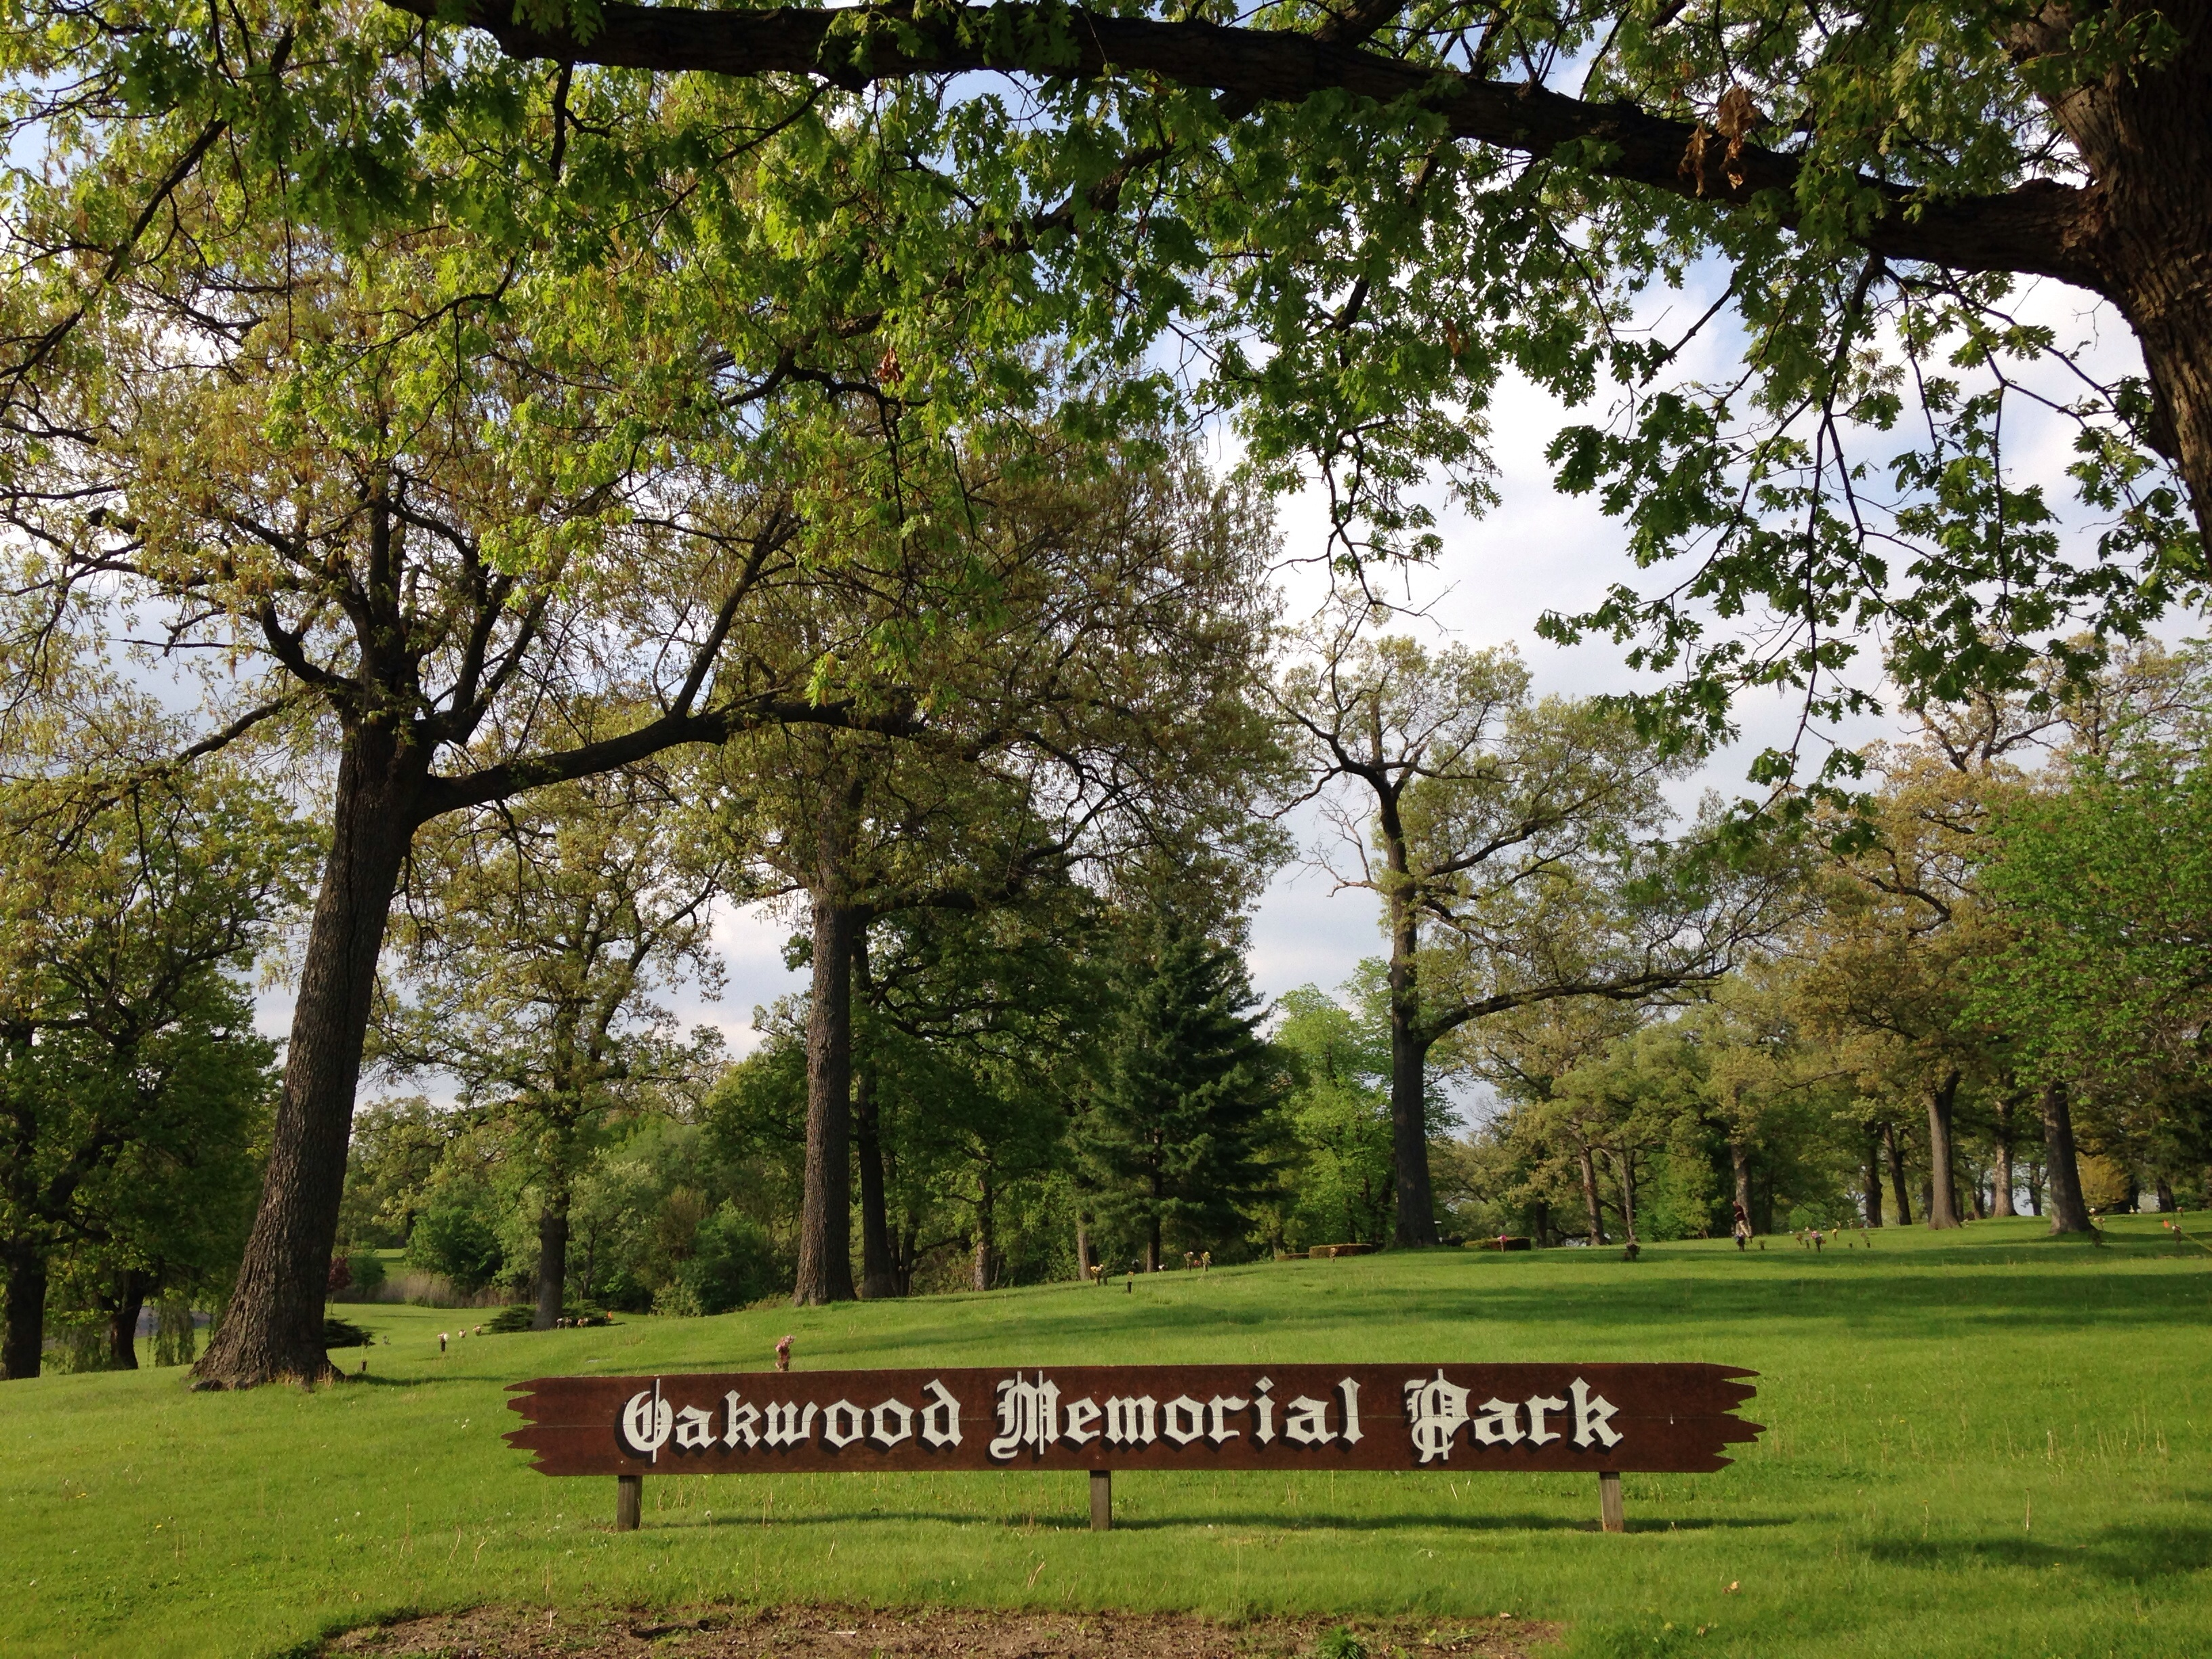 Oakwood Memorial Park